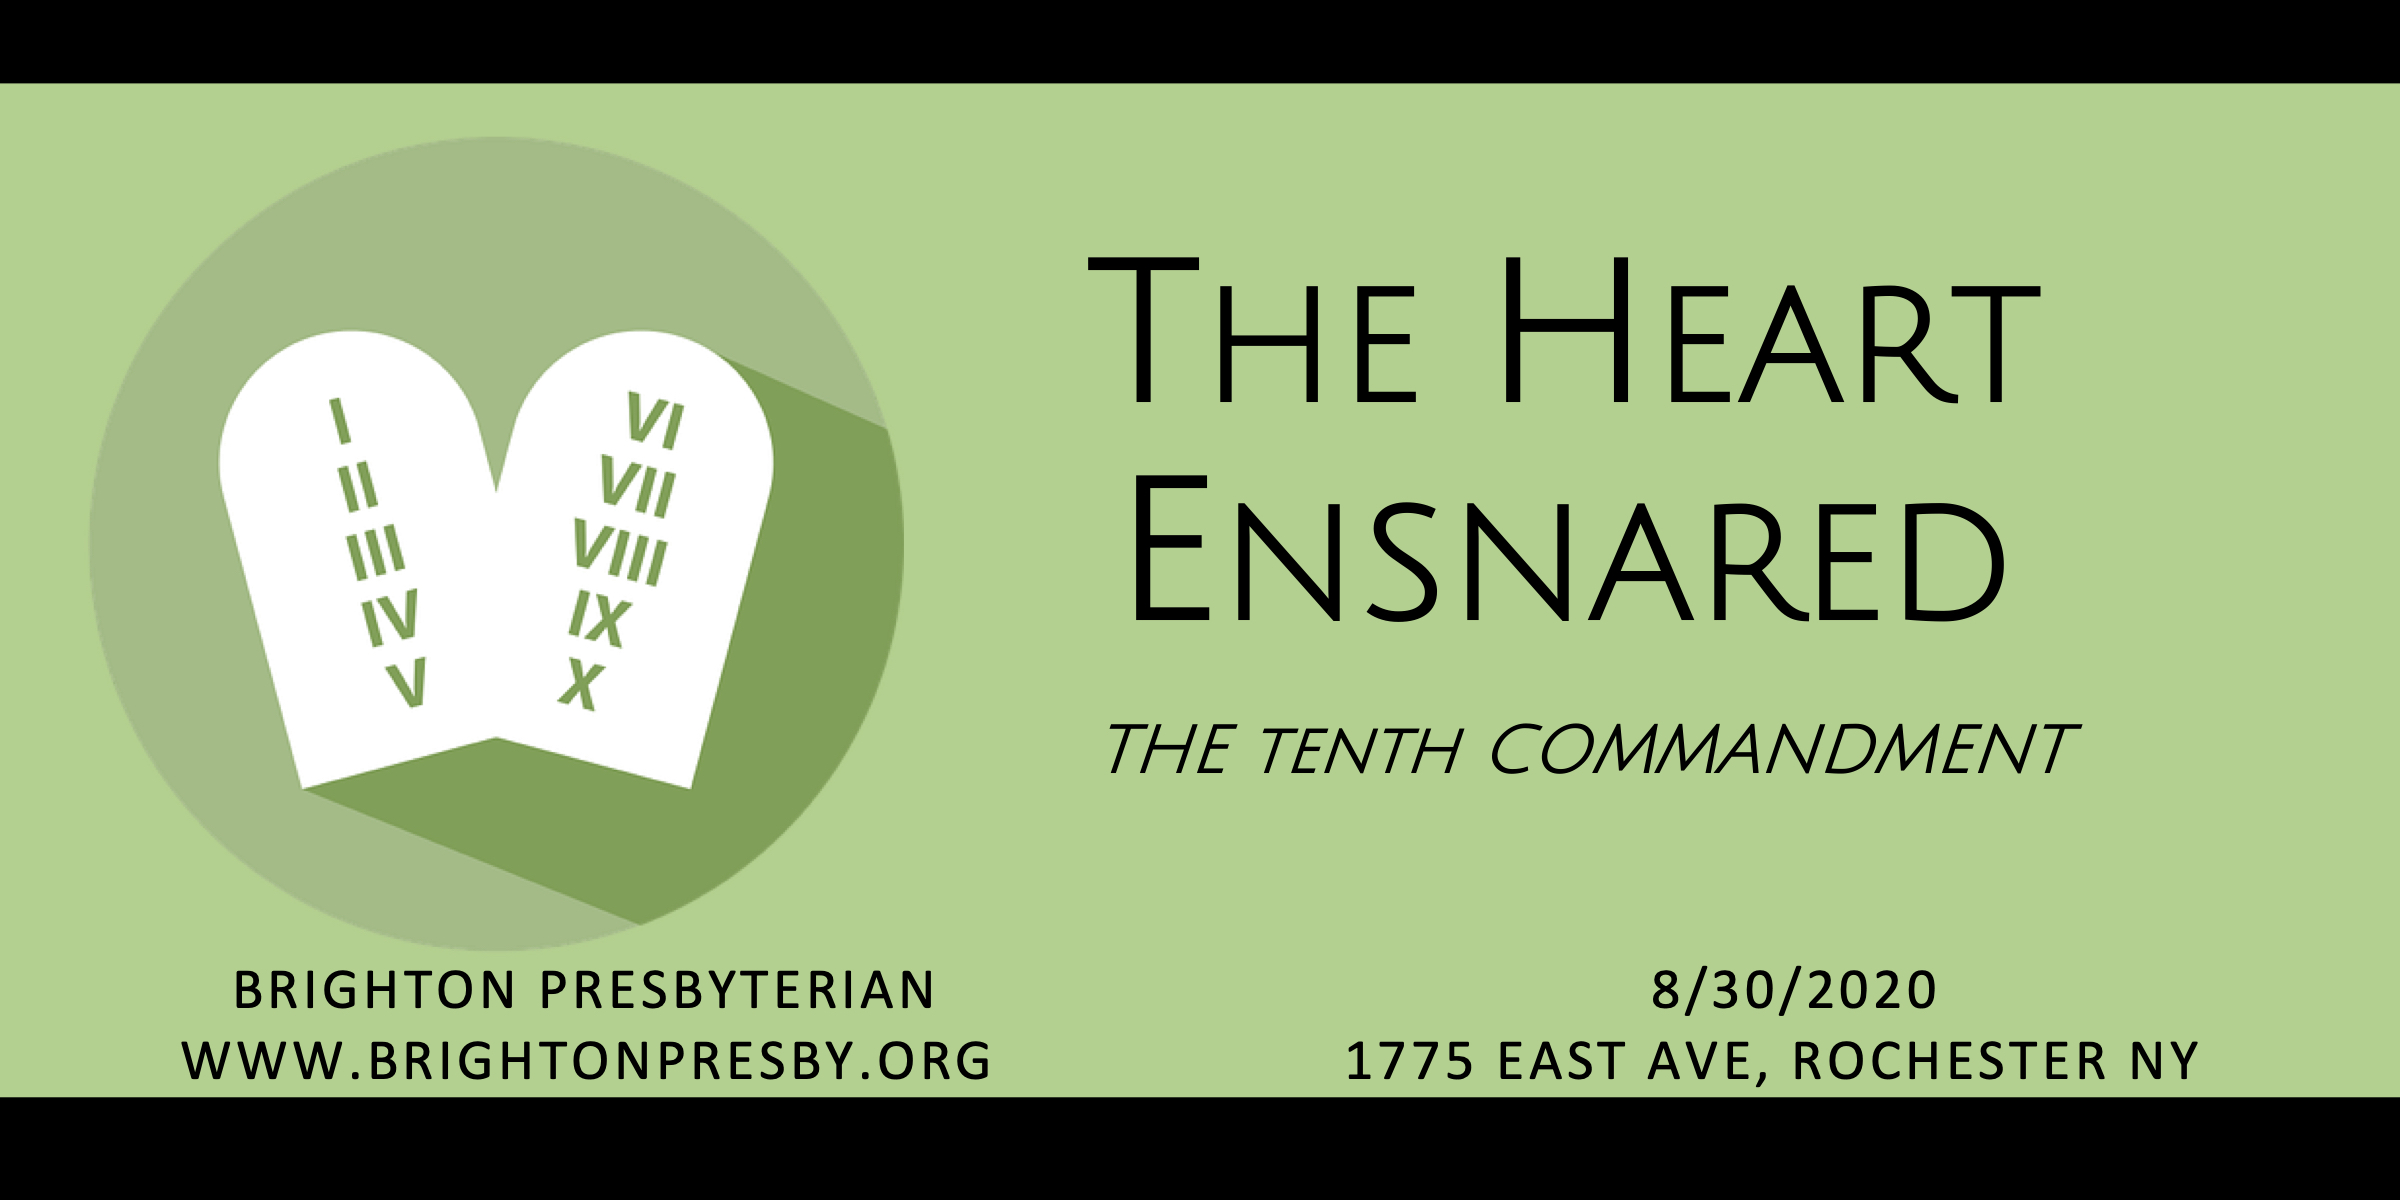 The Heart Ensnared: The Tenth Commandment